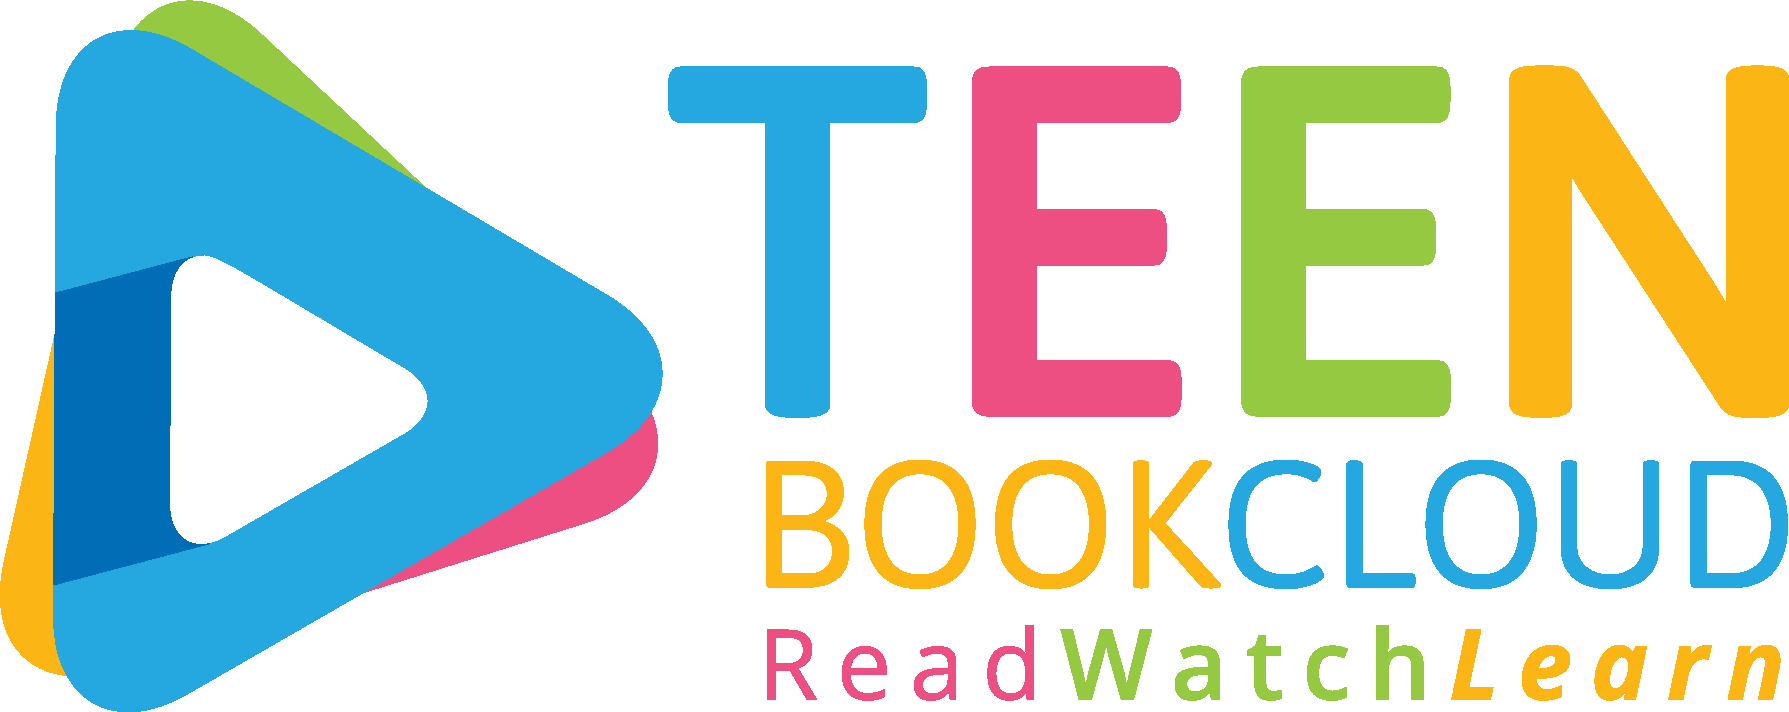 TeenBookCloud logo